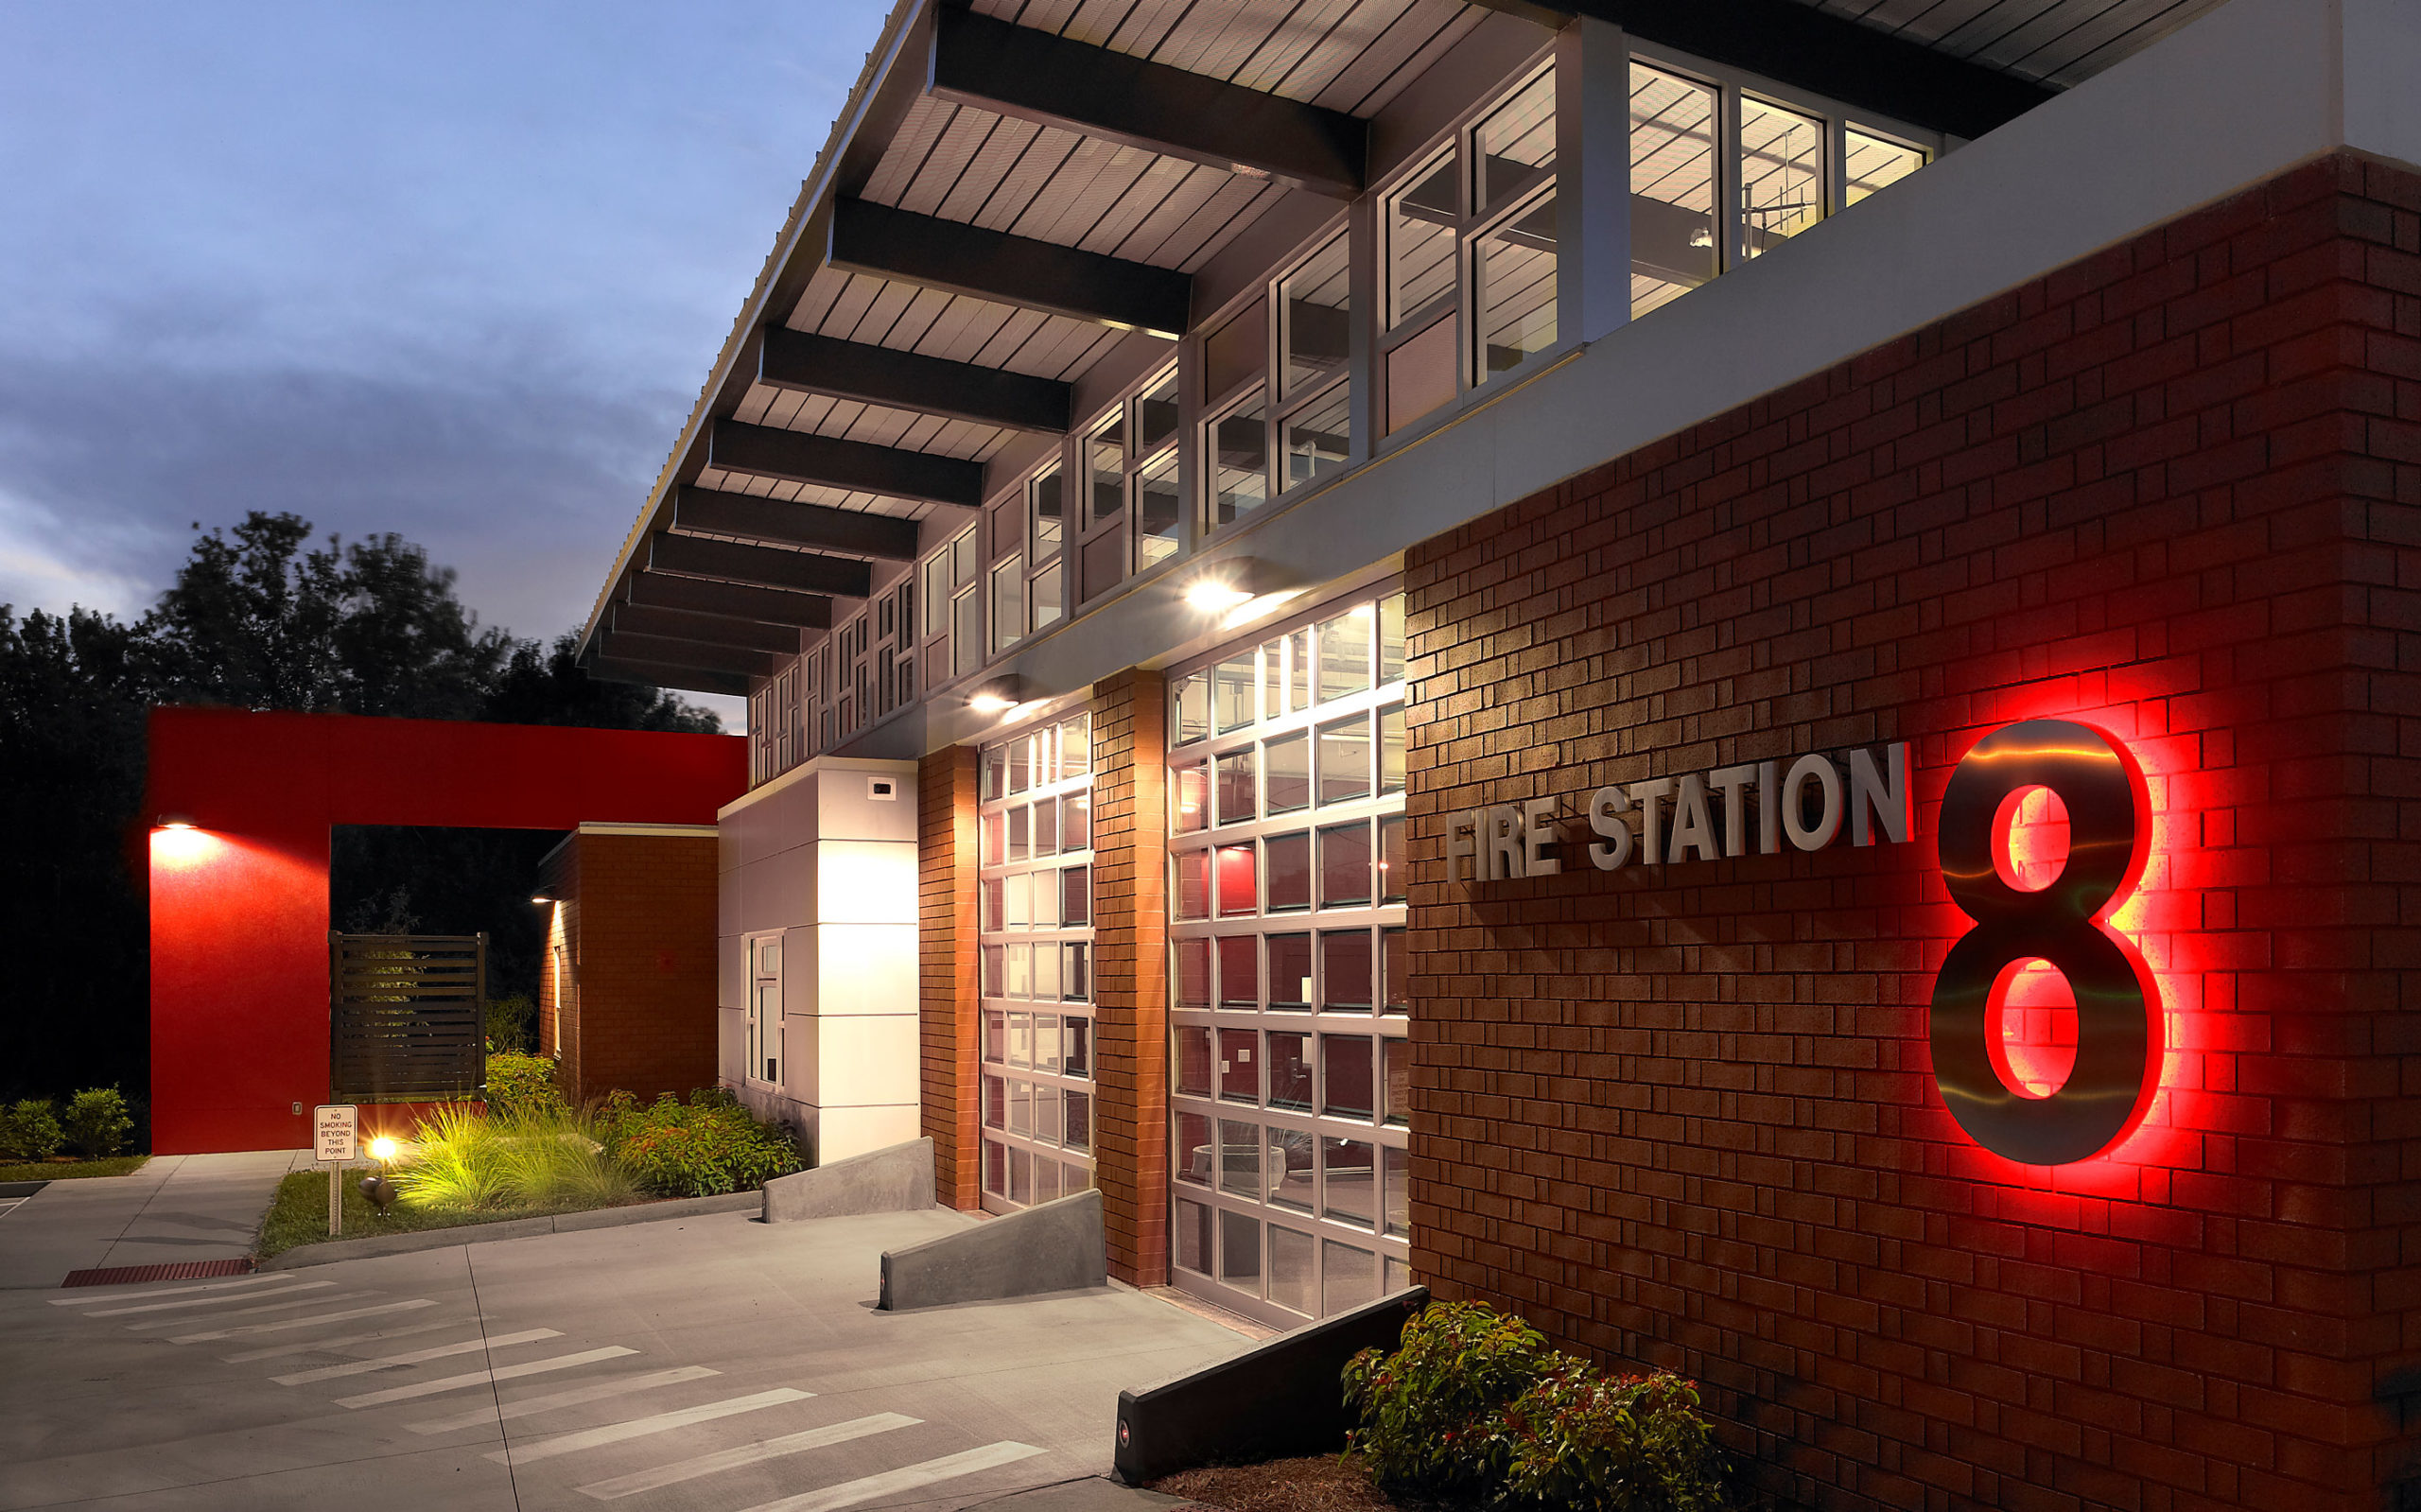 Lake Maggiore Fire Station #8 voted Best Looking Firehouse by Creative Loafing Tampa Bay